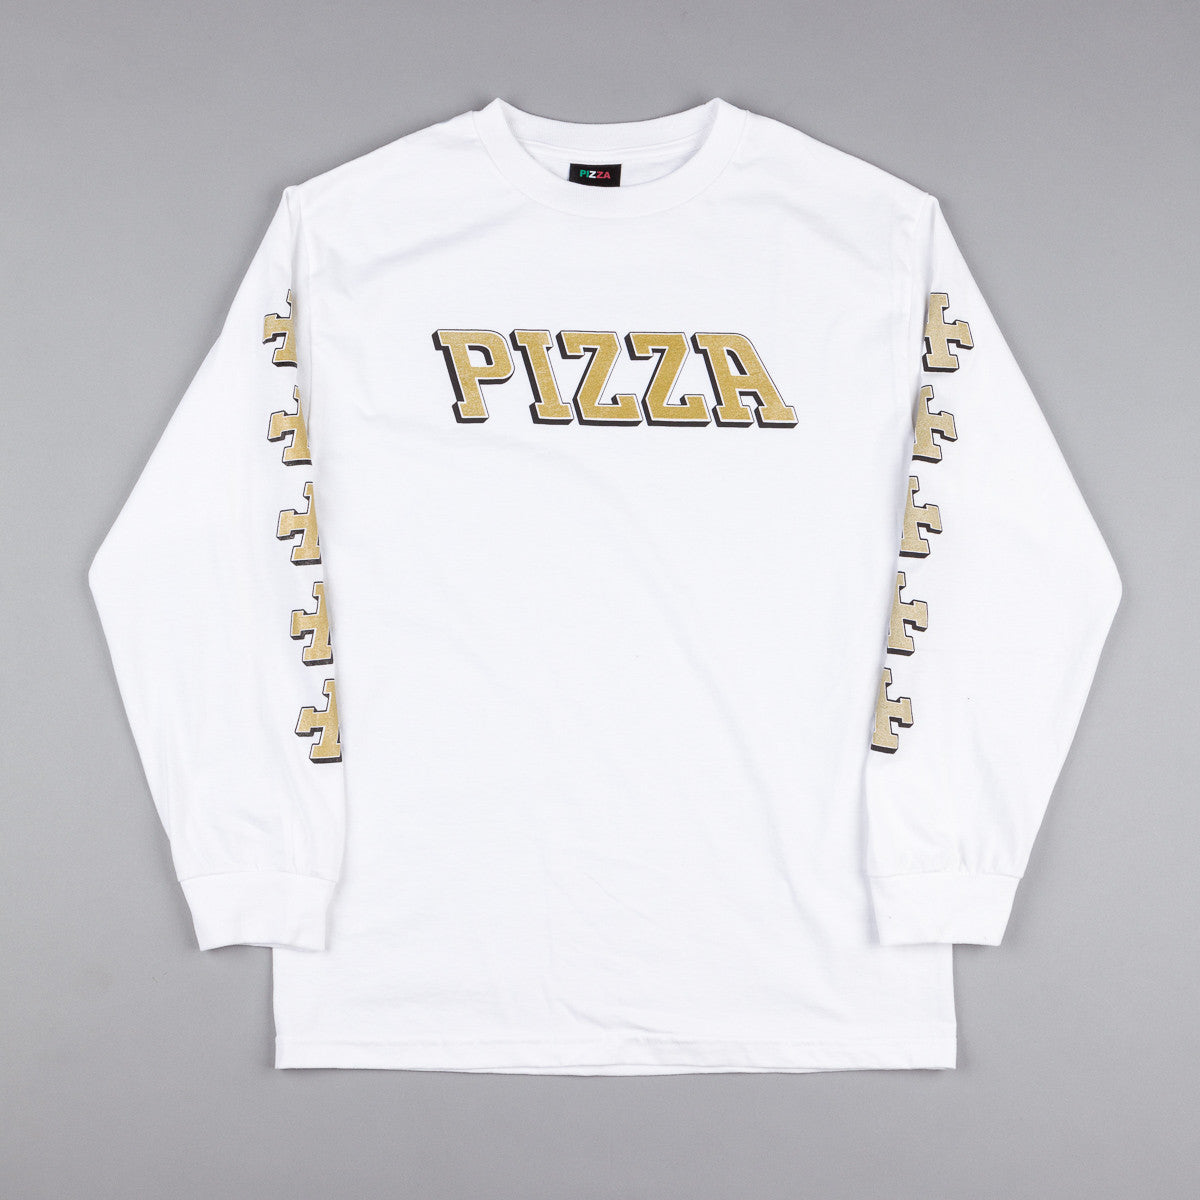 Pizza Skateboards Pizla Long Sleeve T-Shirt